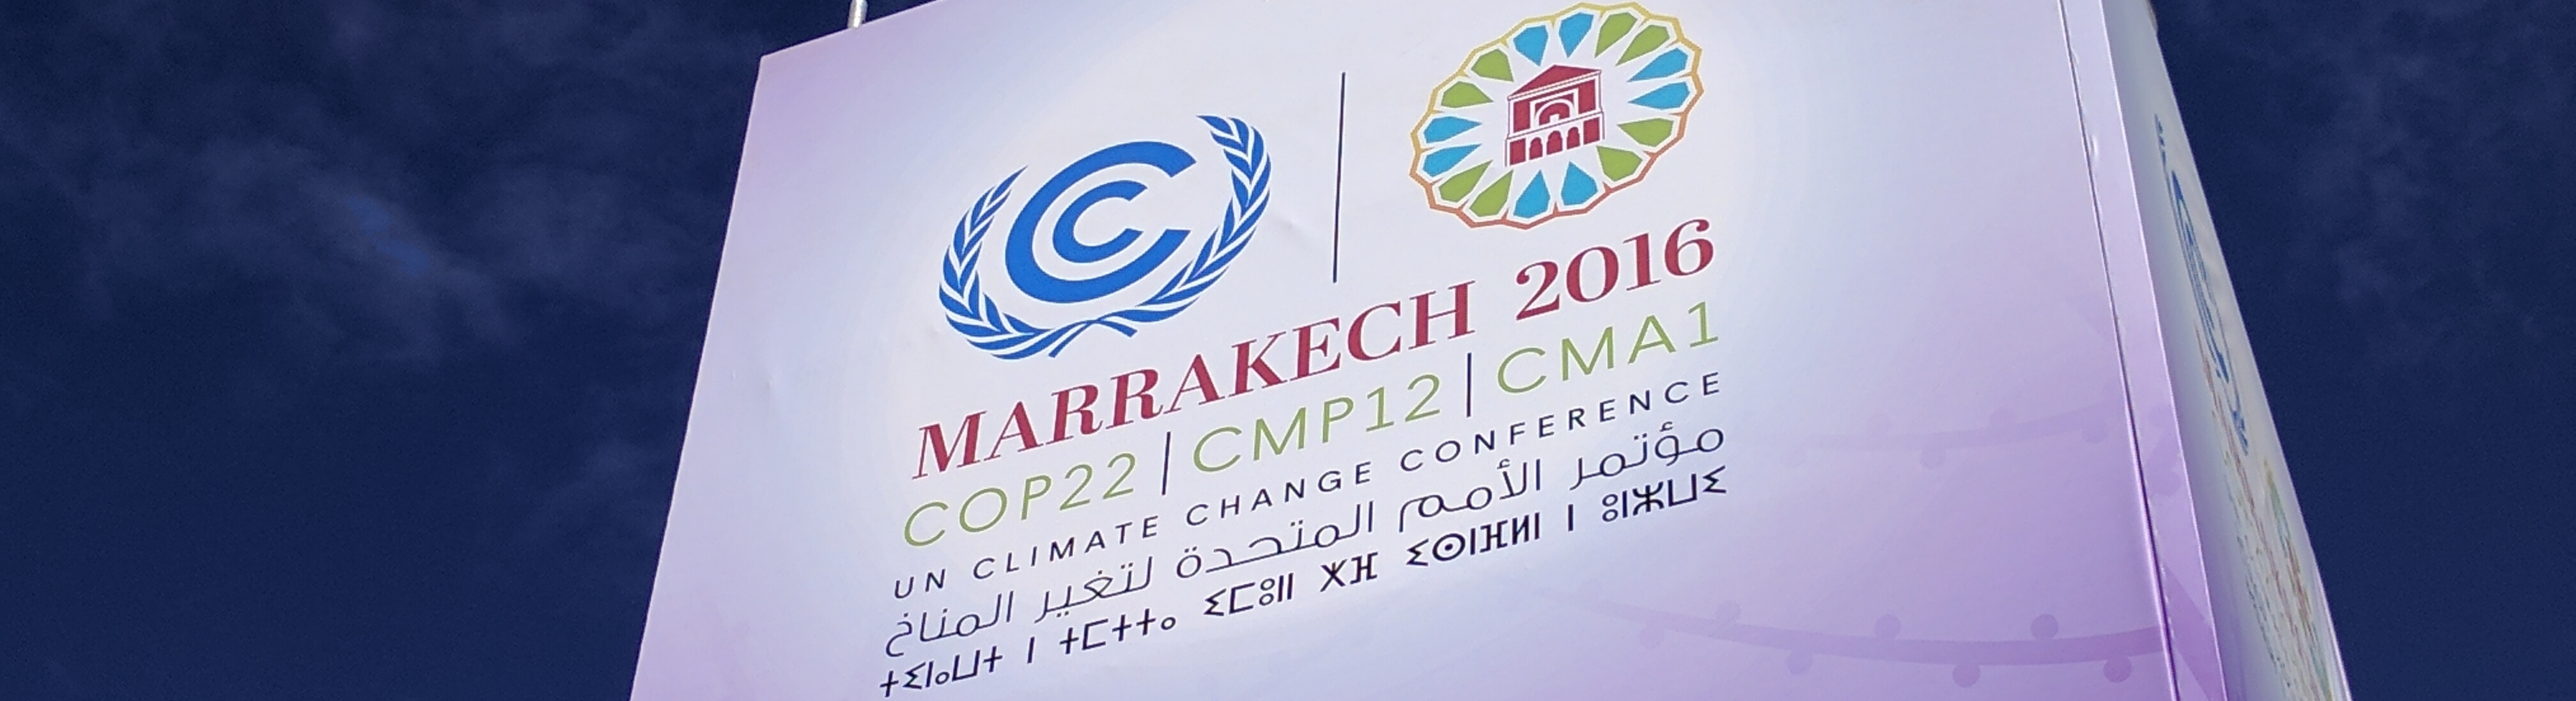 COP22マラケシュ会議報告会in東京(2016年12月6日・CAN-Japan)